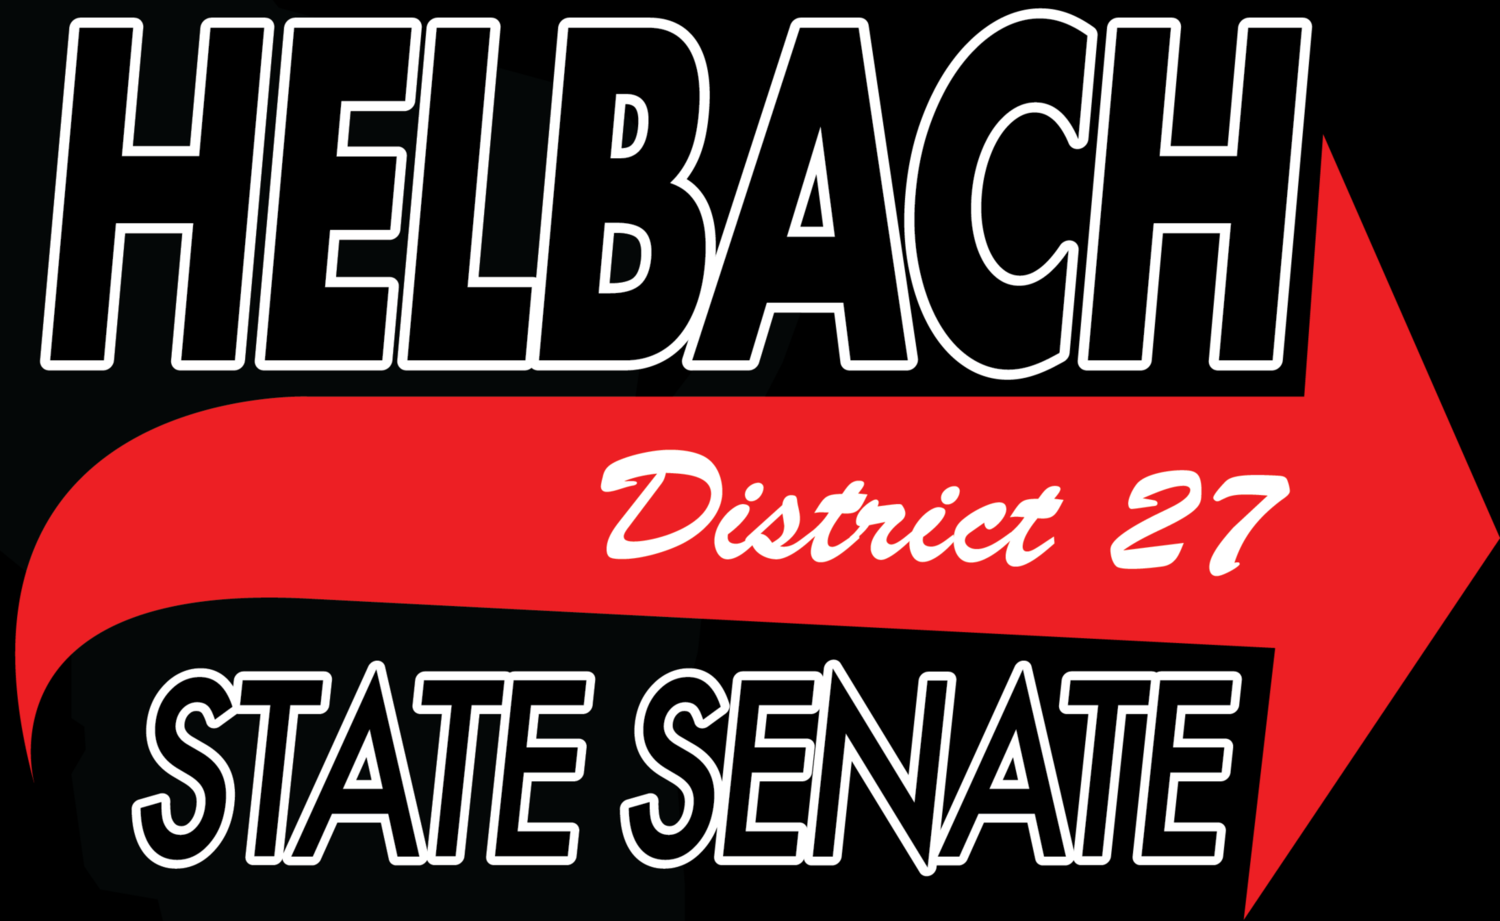 Casey Helbach, A New Voice For District 27